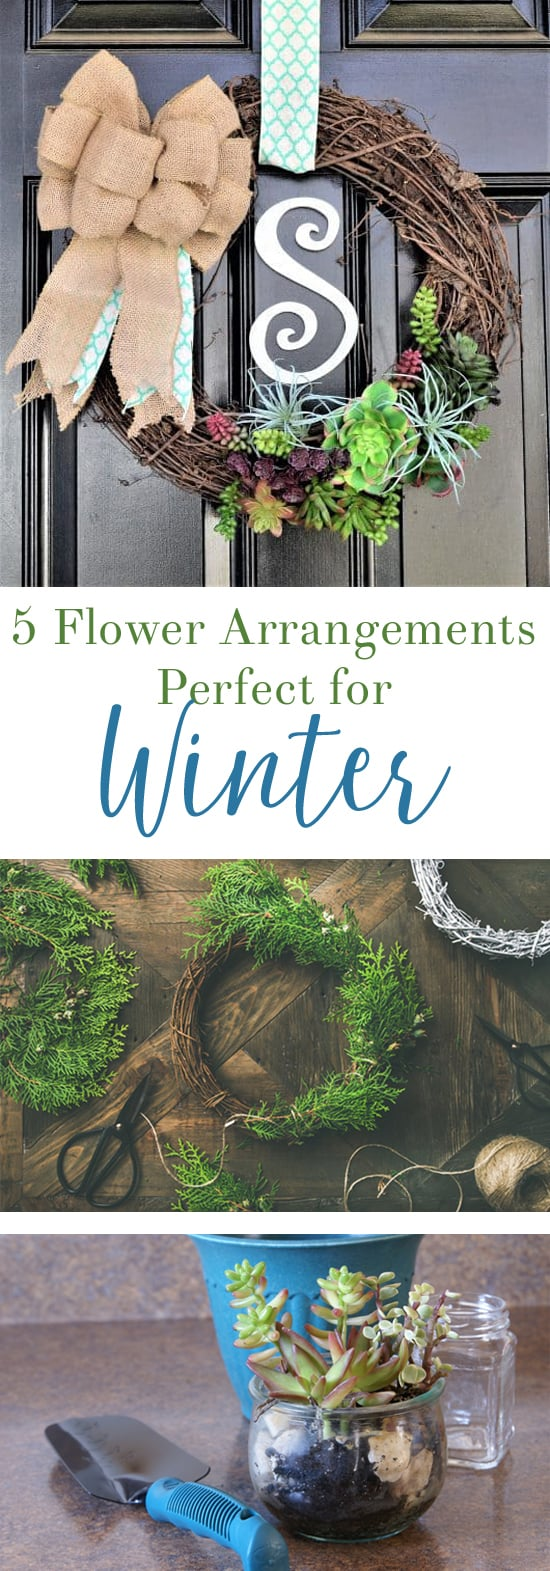 flower arrangements winter